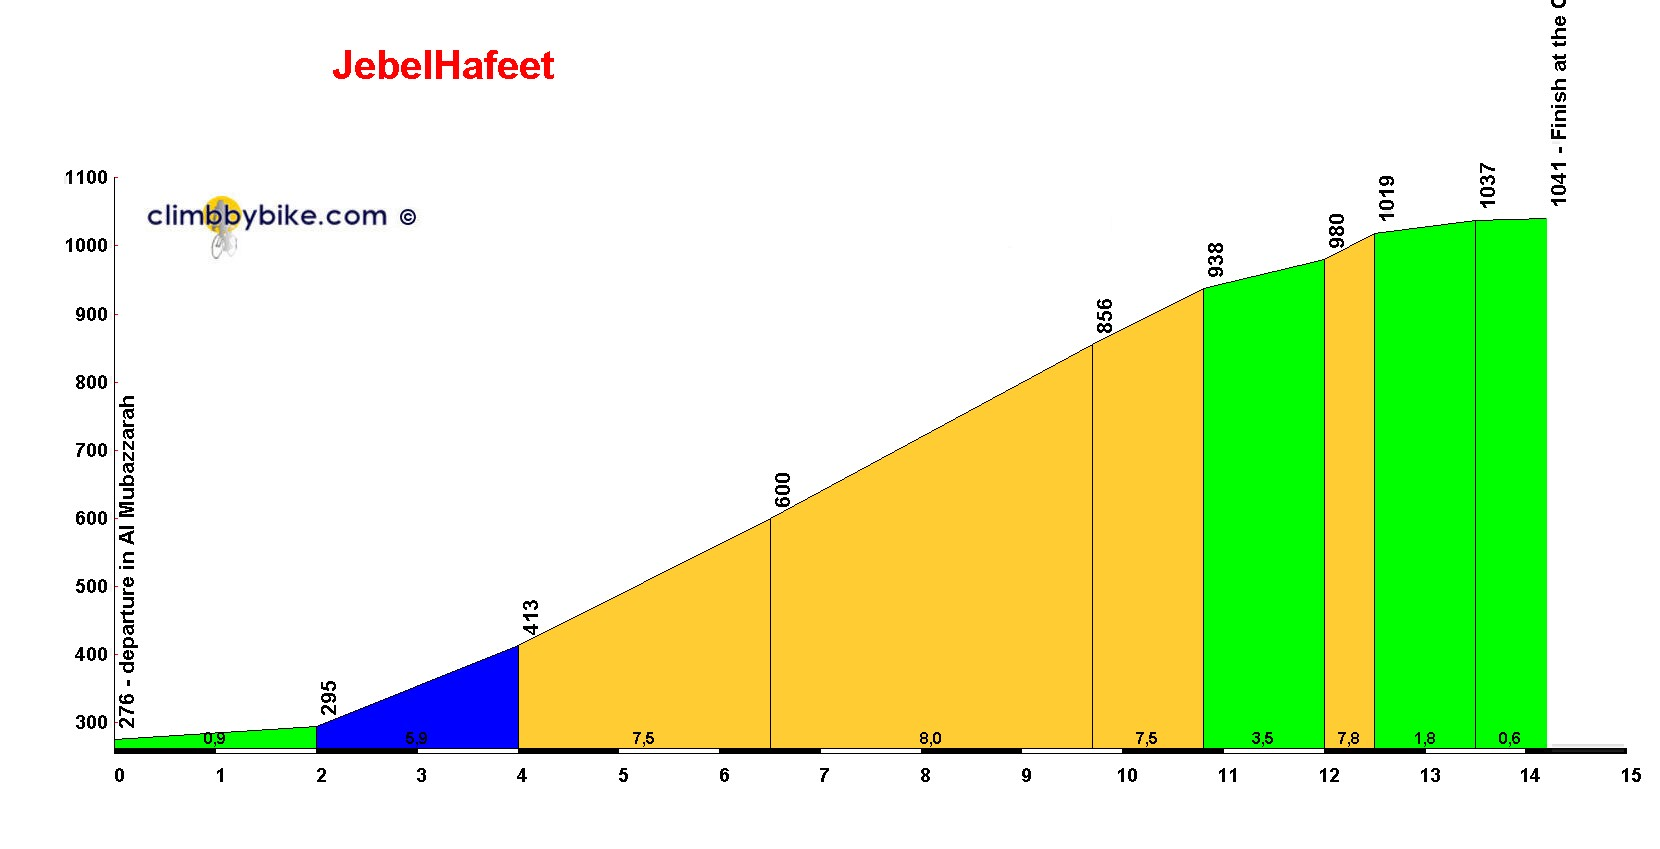 Elevation profile for JebelHafeet